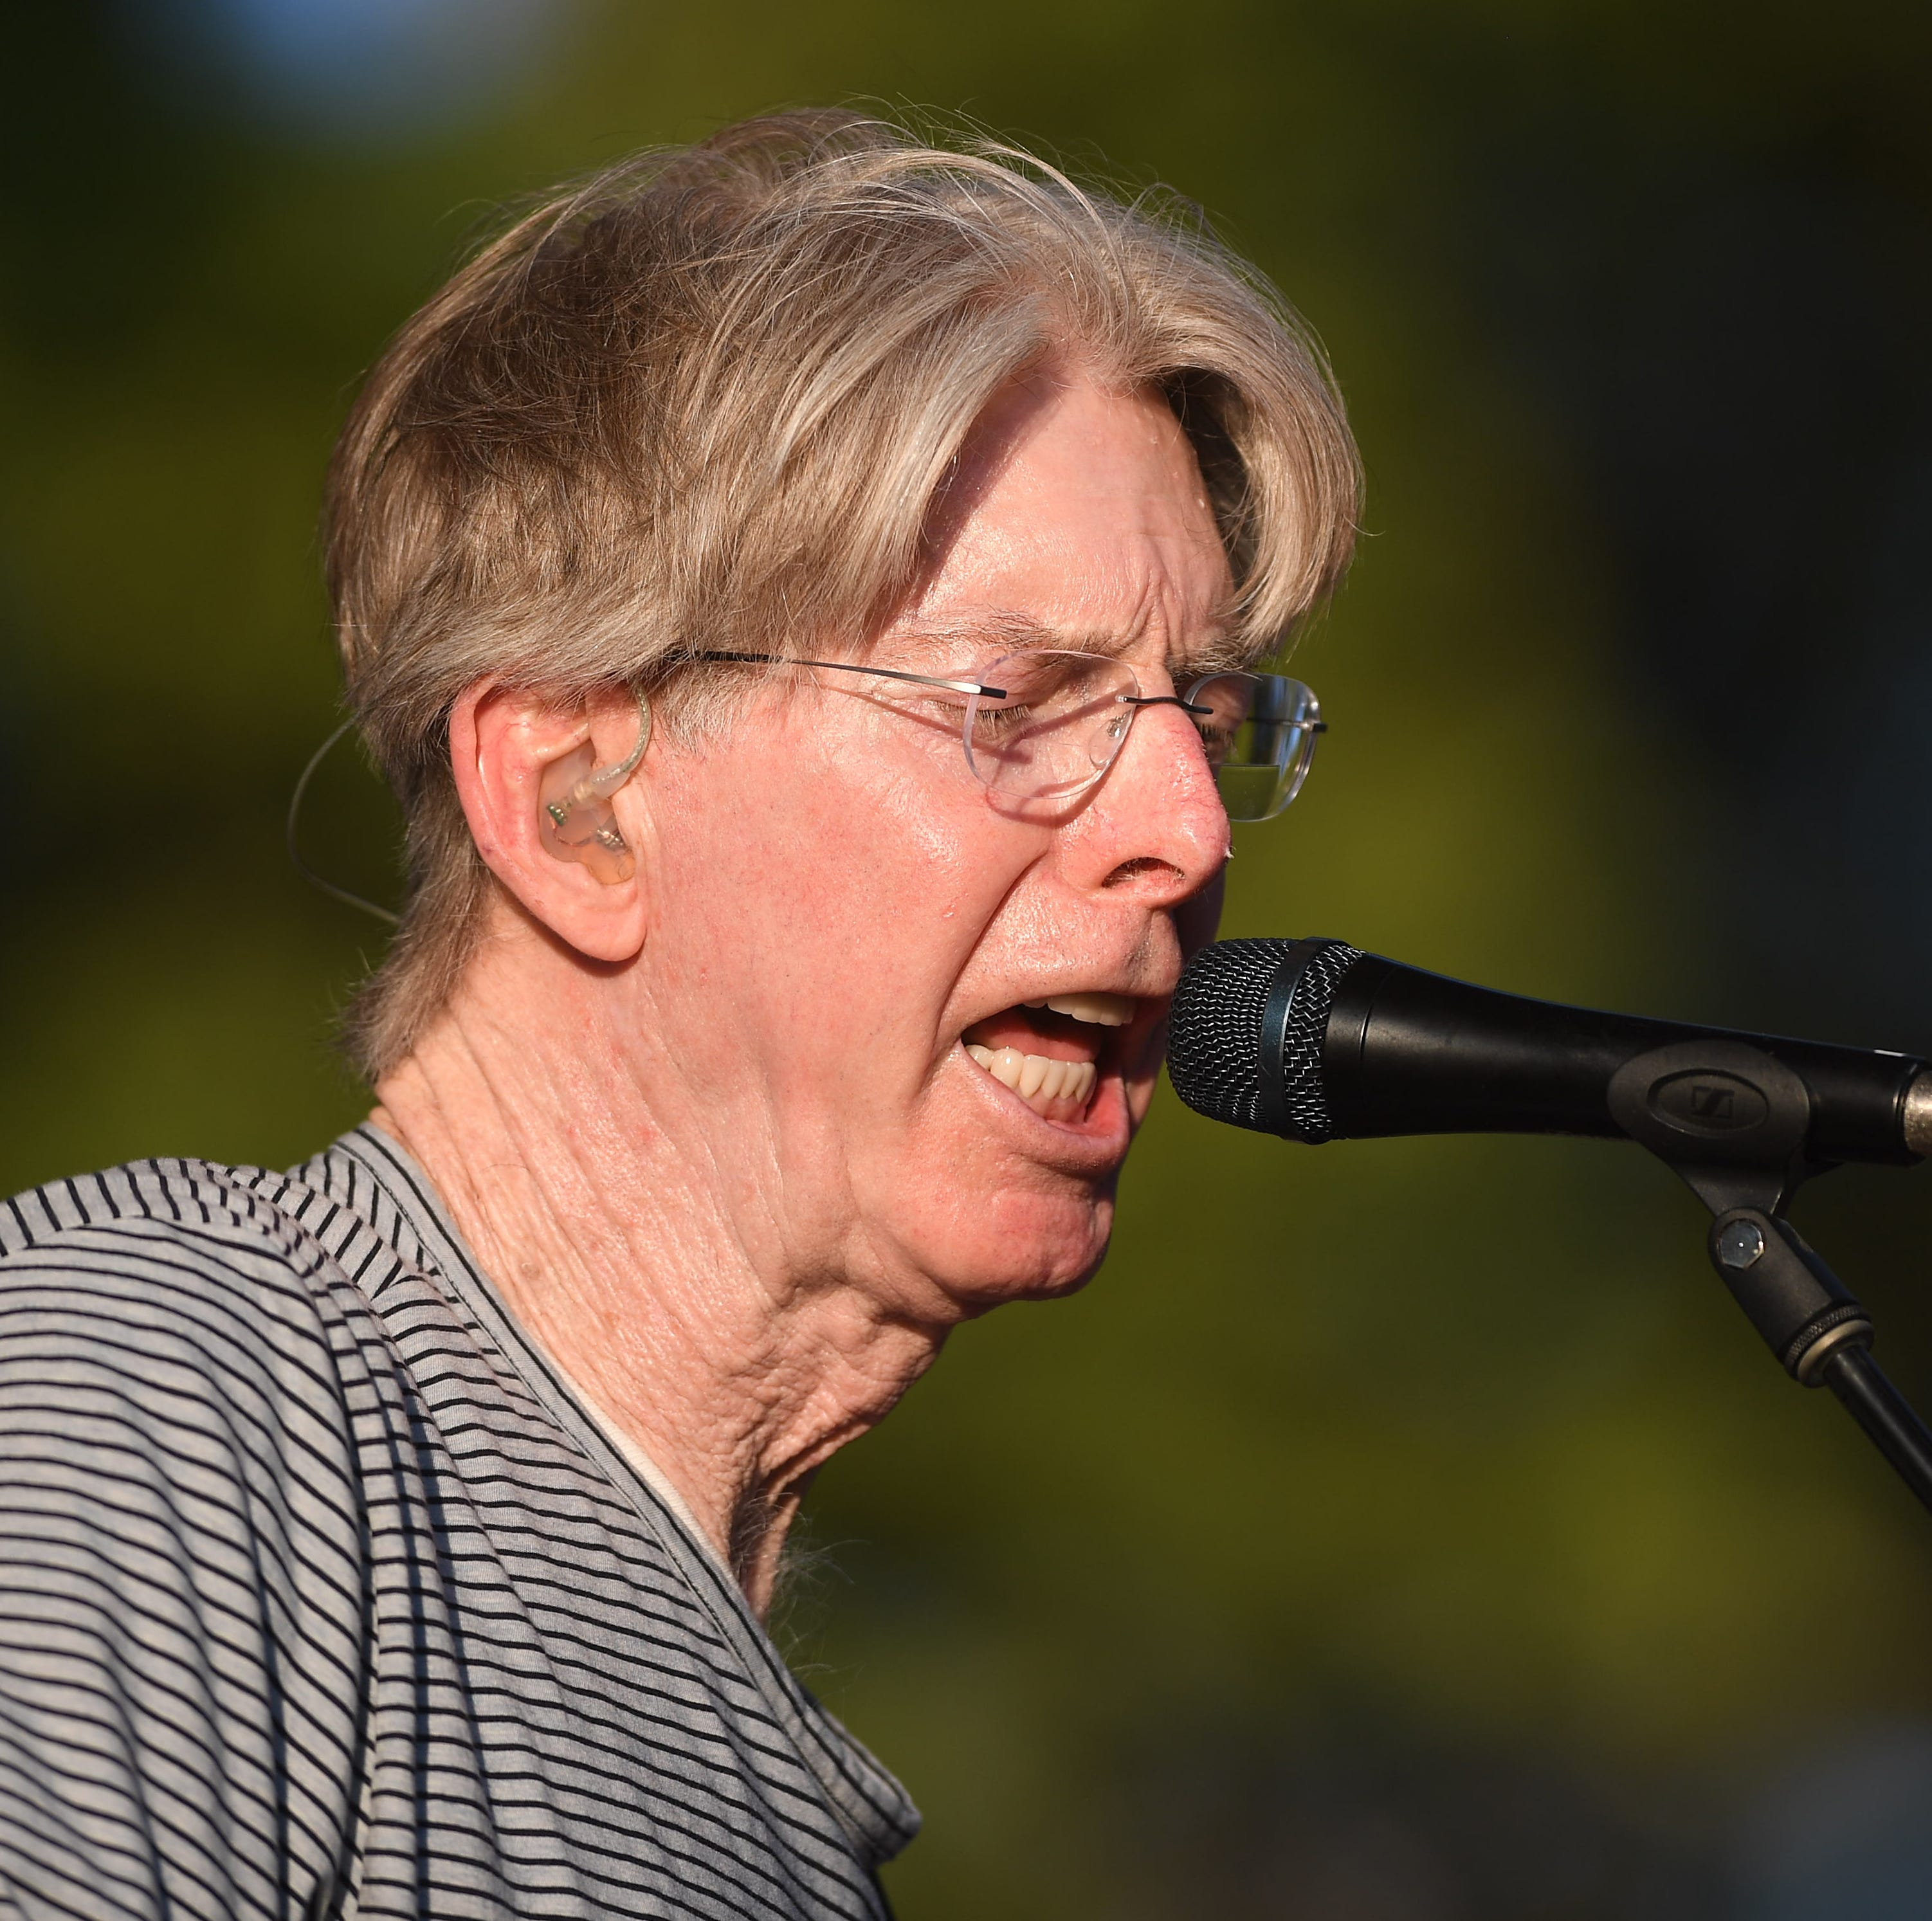 Mountain Jam: Phil Lesh of Grateful Dead fame added to lineup